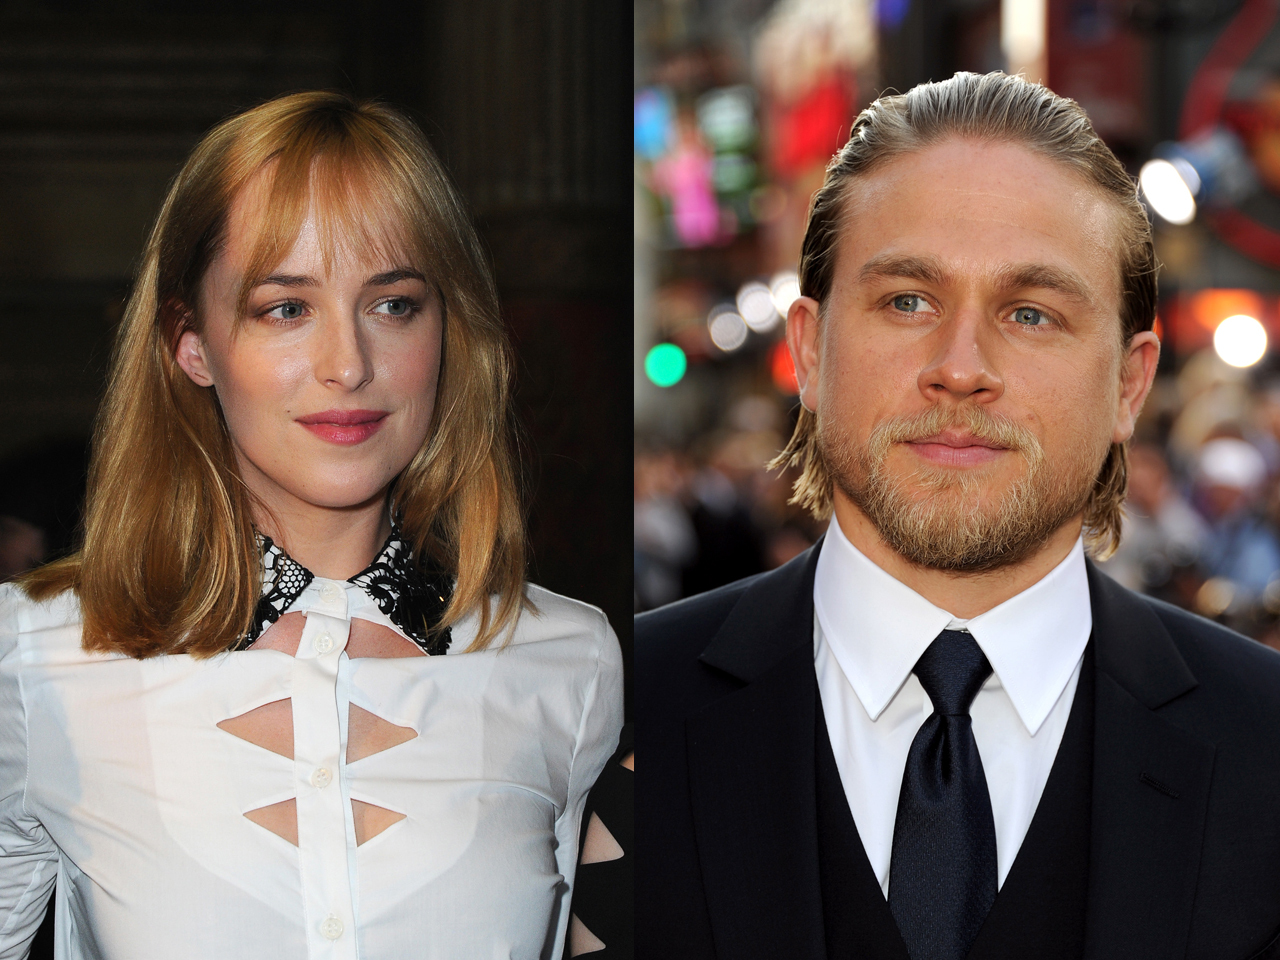 Christian grey casting actor will be announced